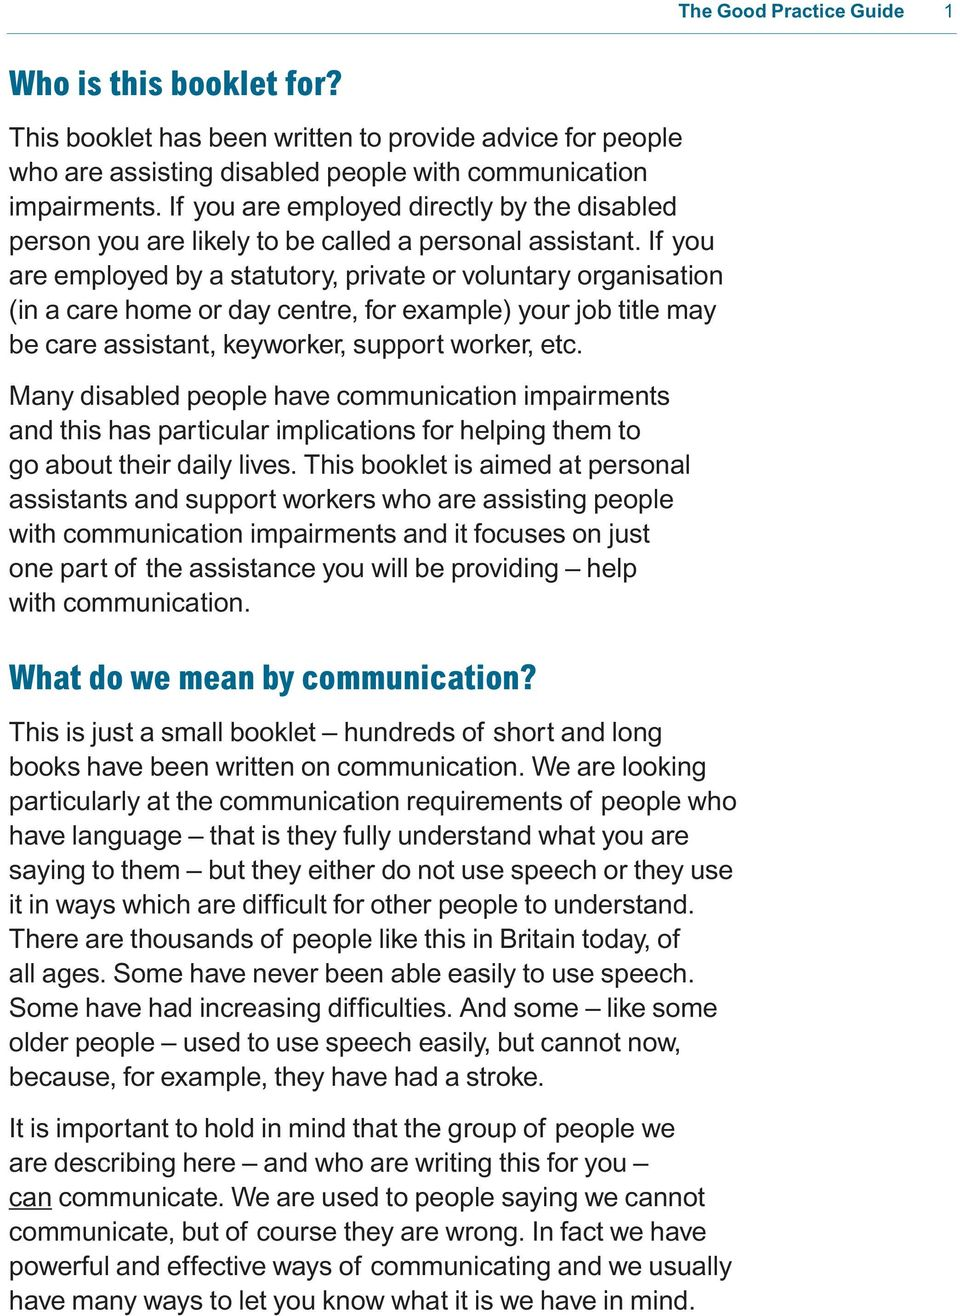 If you are employed by a statutory, private or voluntary organisation (in a care home or day centre, for example) your job title may be care assistant, keyworker, support worker, etc.